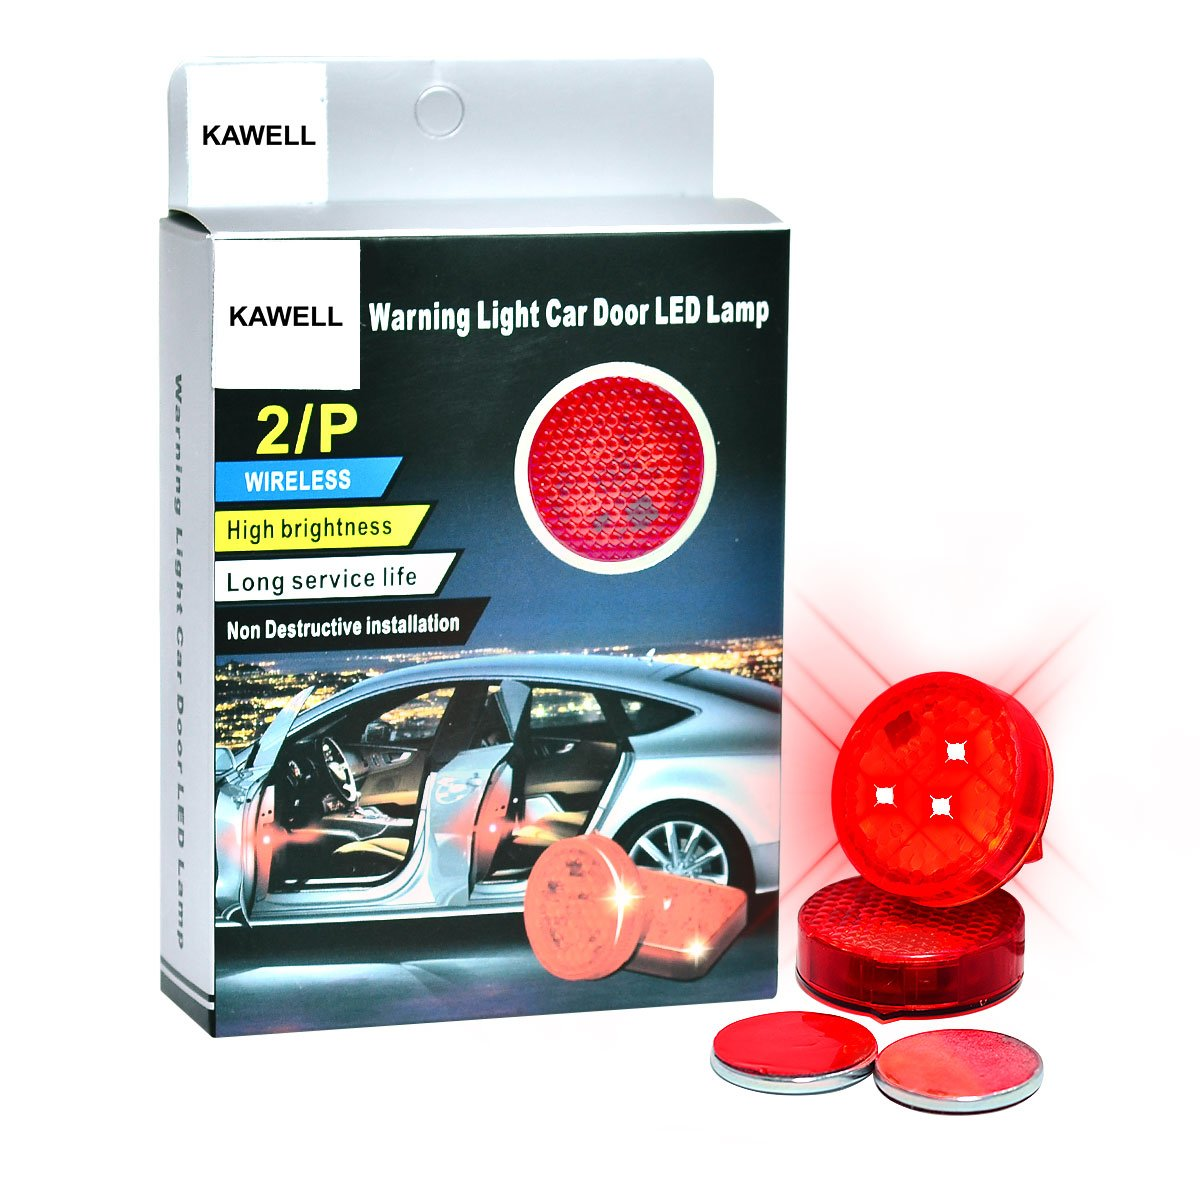 KAWELL Car Door Safety Warning Light Reflector, Intelligent Magnetic Sensor Switch On/ Off, Red LED Strobe Flicker for Rear-end Anti Collision,No Wiring, Waterproof. (round, red)